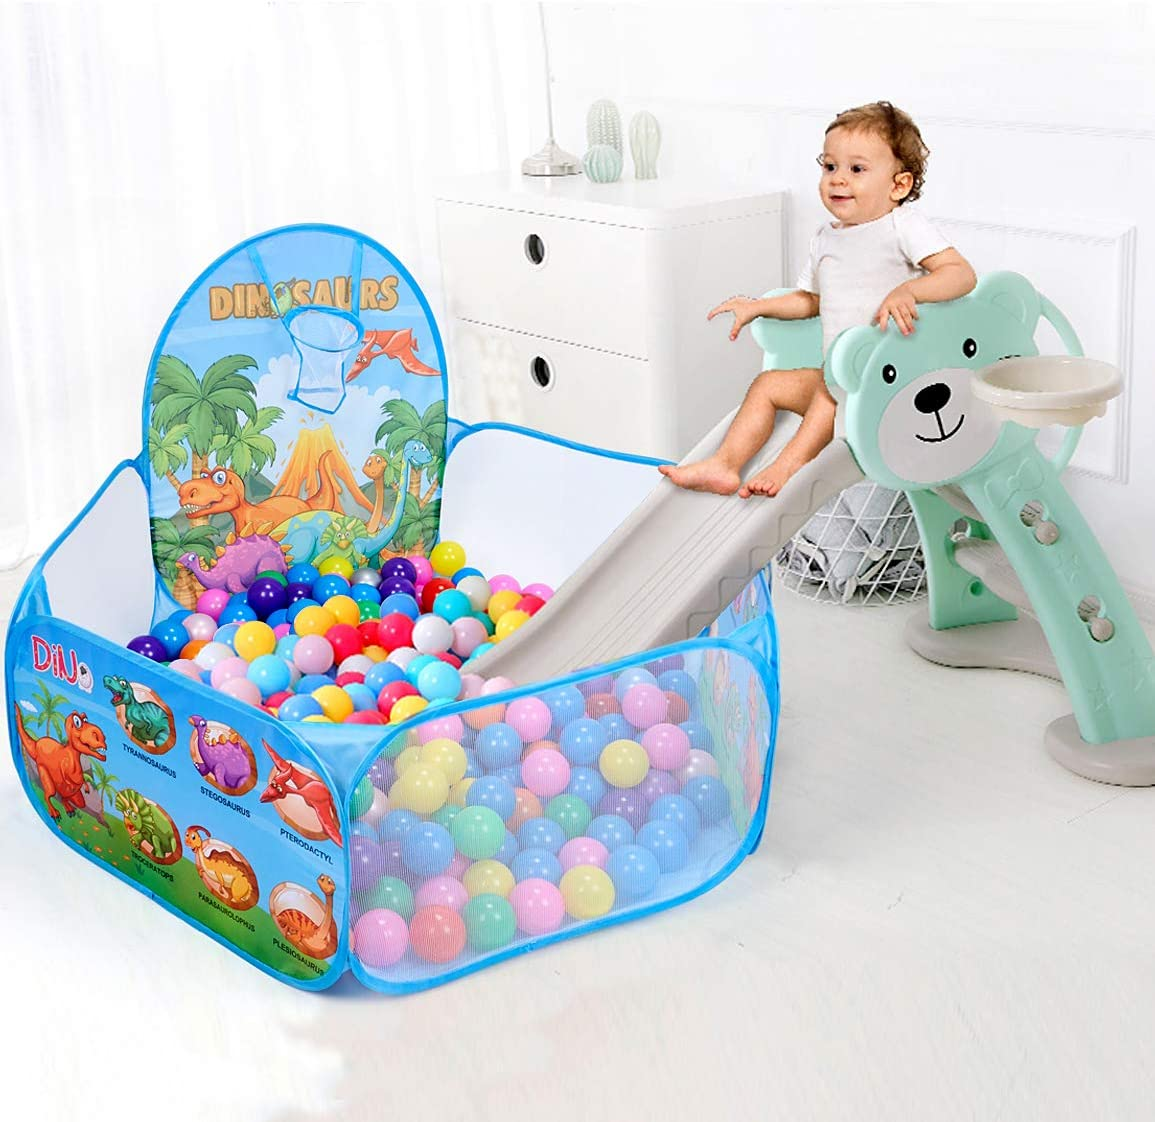 Balls Not Included Engineering Car Print Kids Ball Pit with Basketball Hoop 4 Ft//120CM Pop Up Toddler Ball Ocean Pool Tent for Girls Boys Outdoor Indoor Play with Zipper Storage Bag